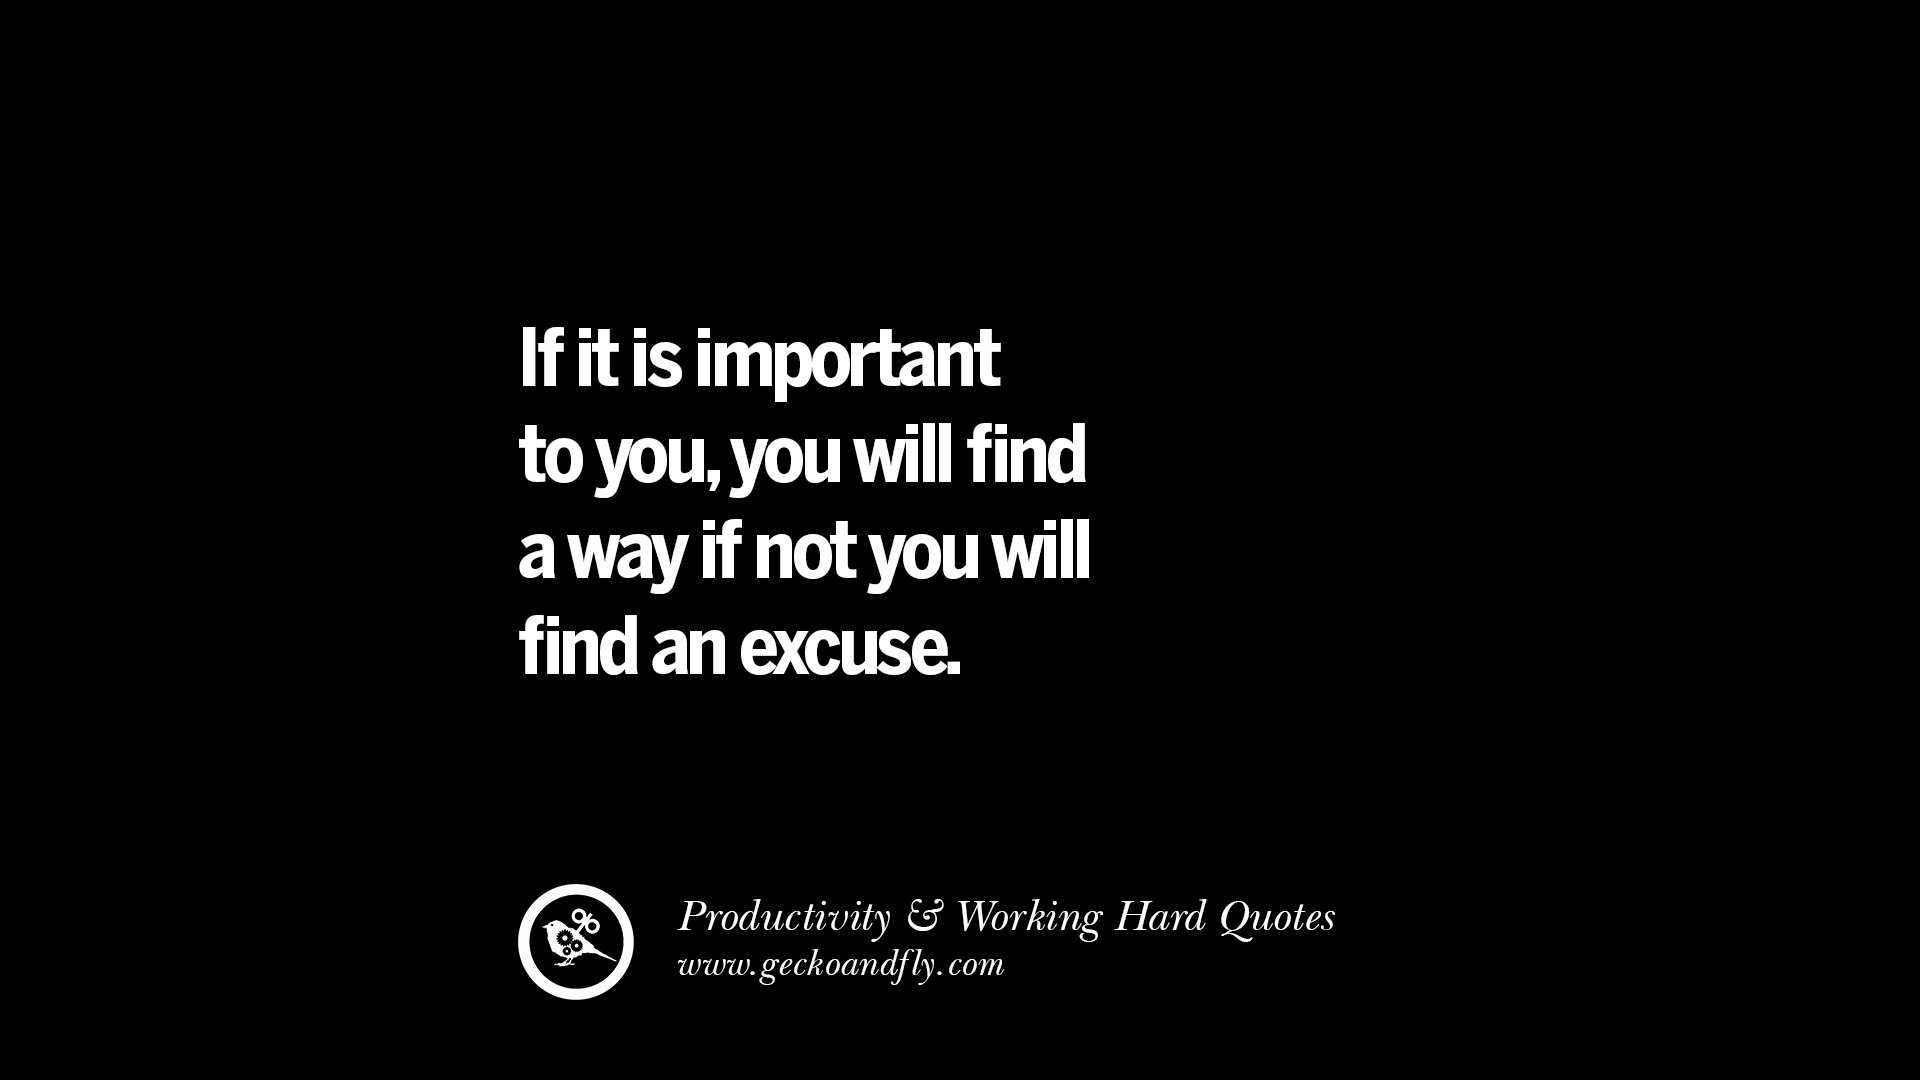 It Takes Dedication And Hard Work To Constantly Improve: 30 Uplifting Quotes On Increasing Productivity And Working